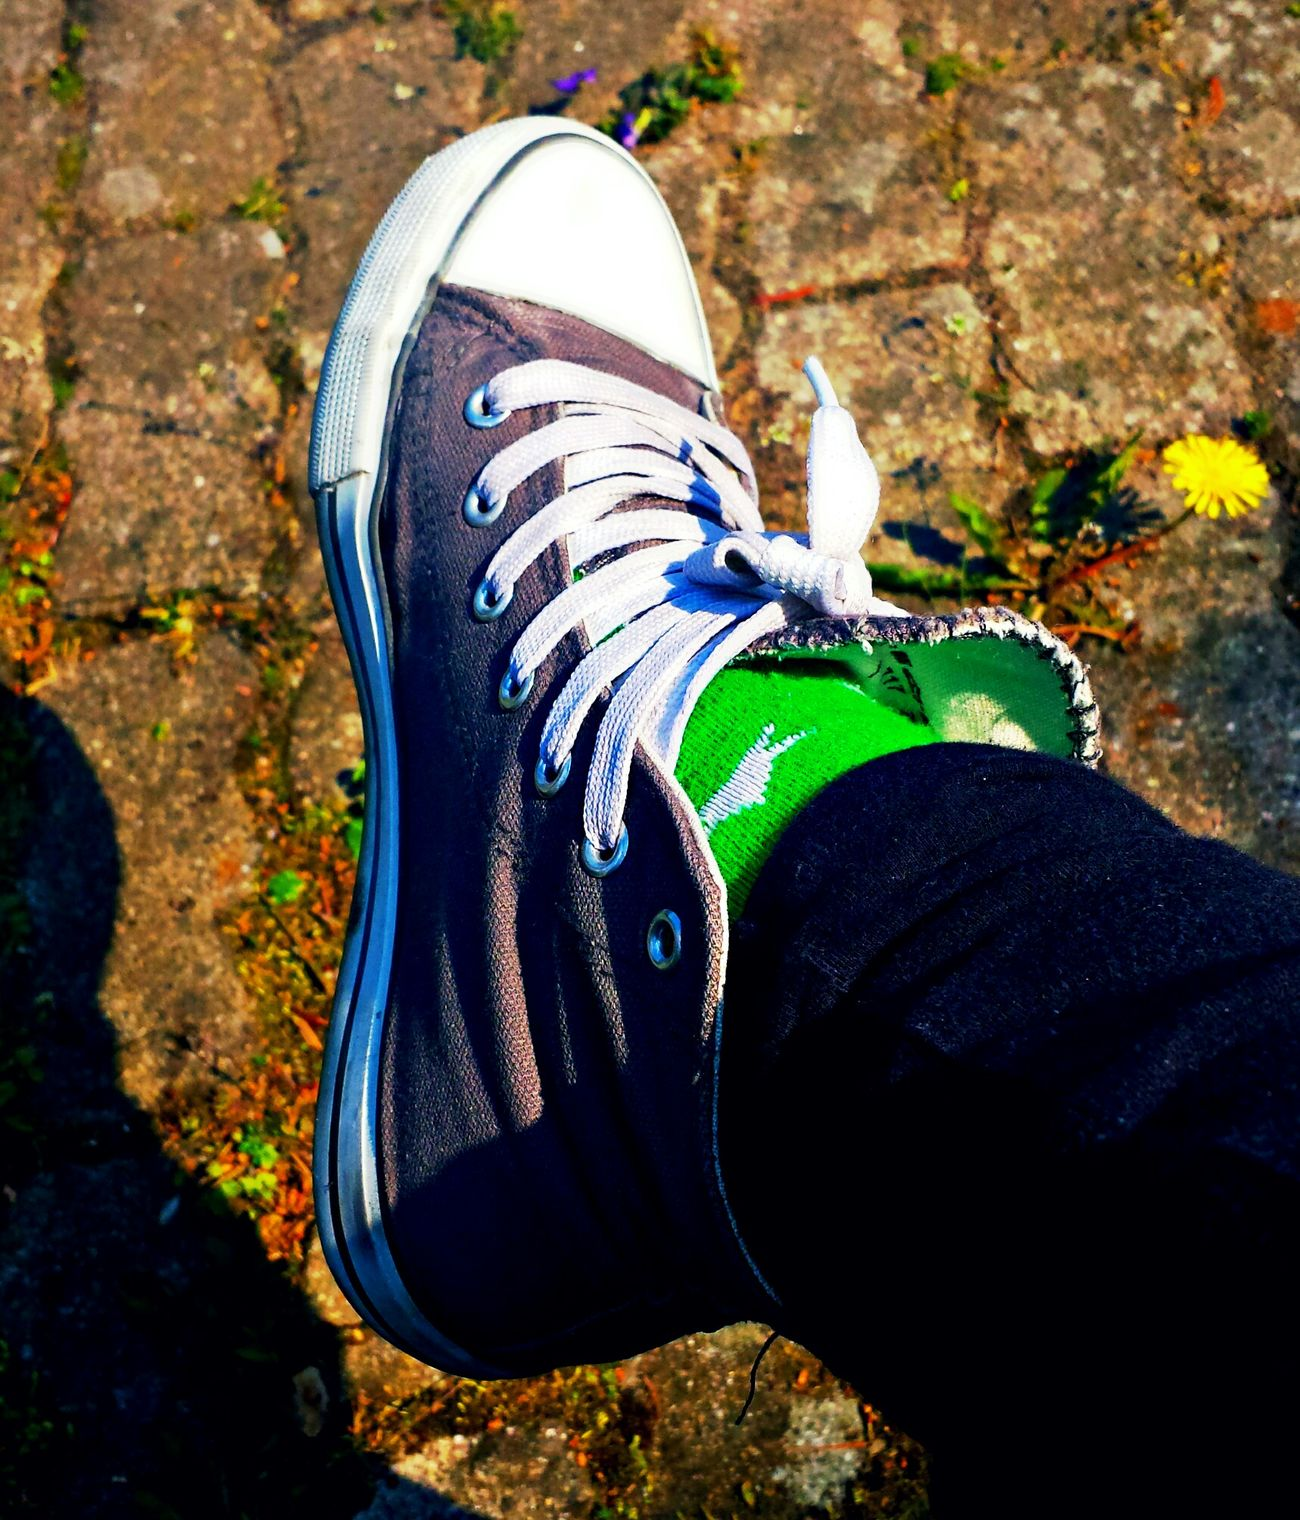 One Person Lifestyles Shoe Close-up Sneaker SneakerPorn Green Socks Style Shoe Shoeselfie ShoePorn I Love Shoes I Love Sneaker Eyemphotography Followme Eye4photography  Picoftheday EyeEmBestEdits EyeEm Best Shots Human Leg